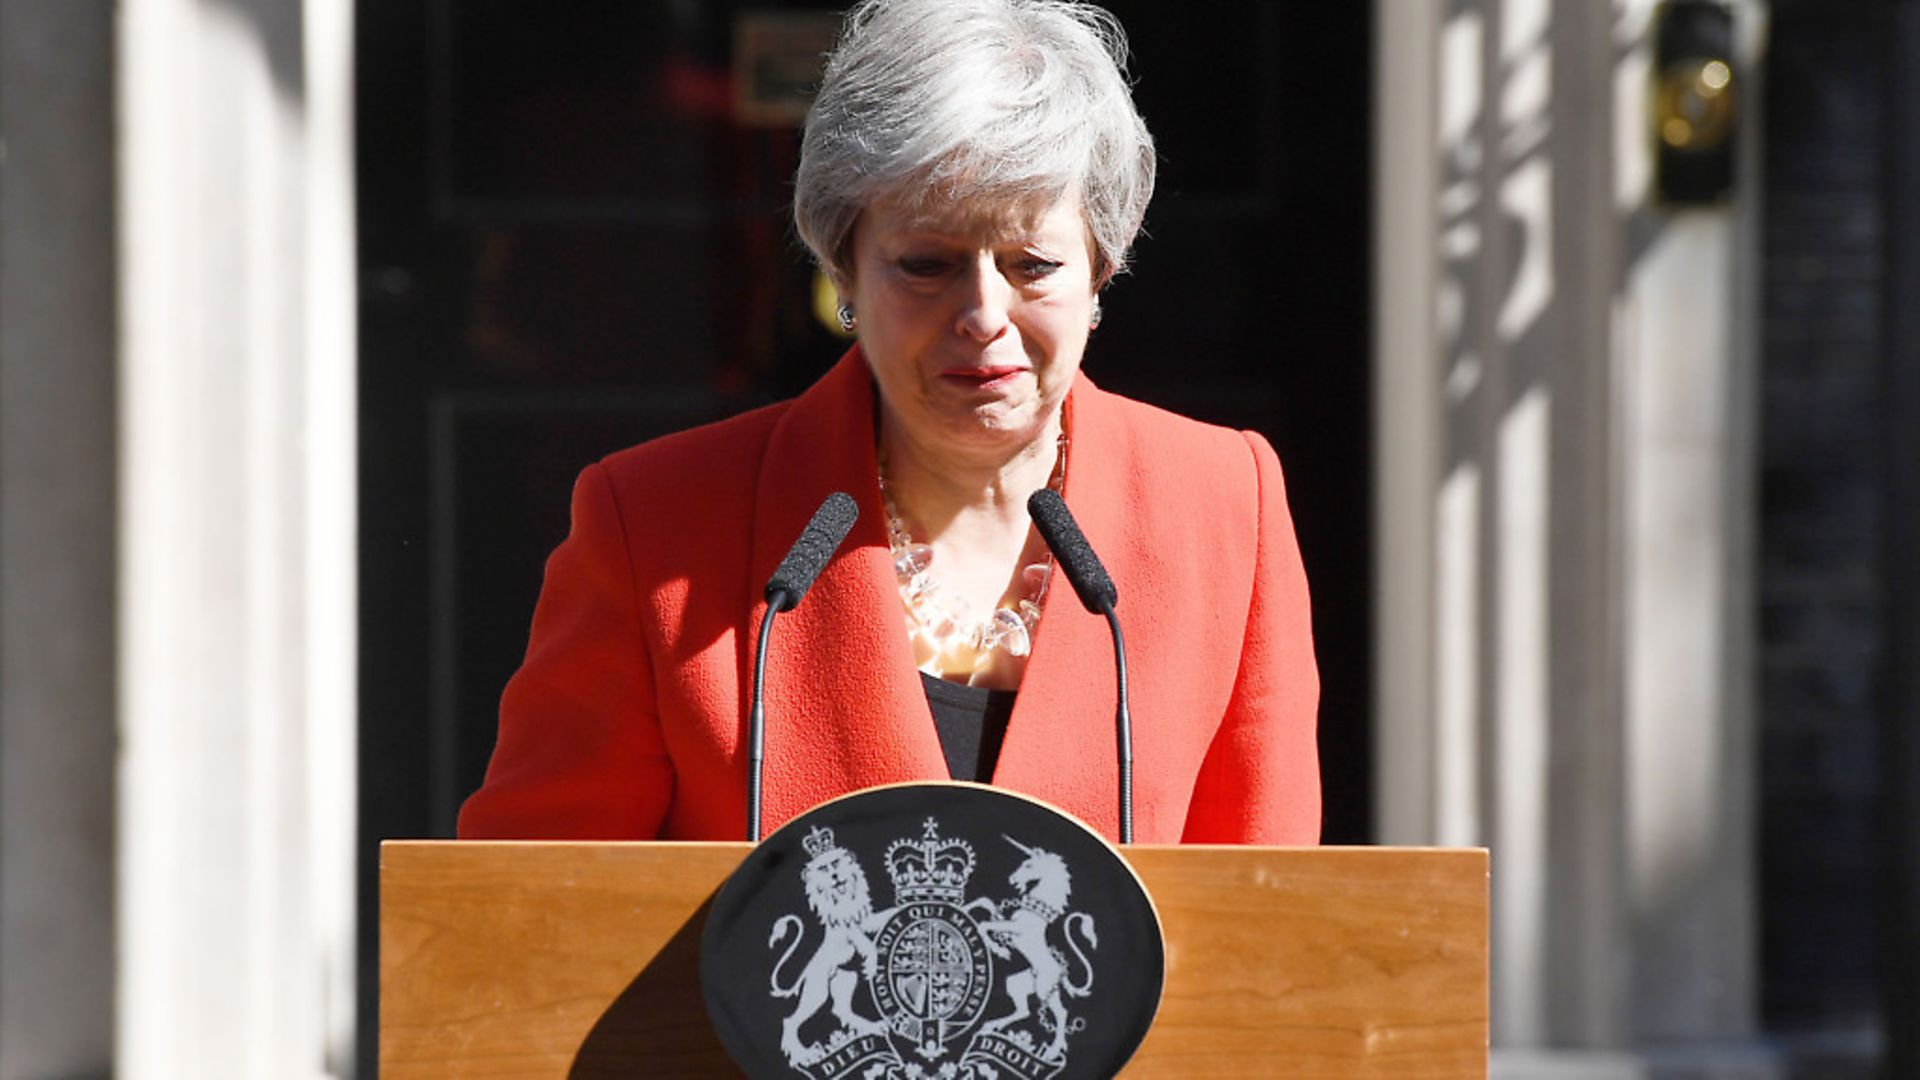 Tears as Theresa May announces she is resigning as prime minister.  (Photo by Leon Neal/Getty Images) - Credit: Getty Images